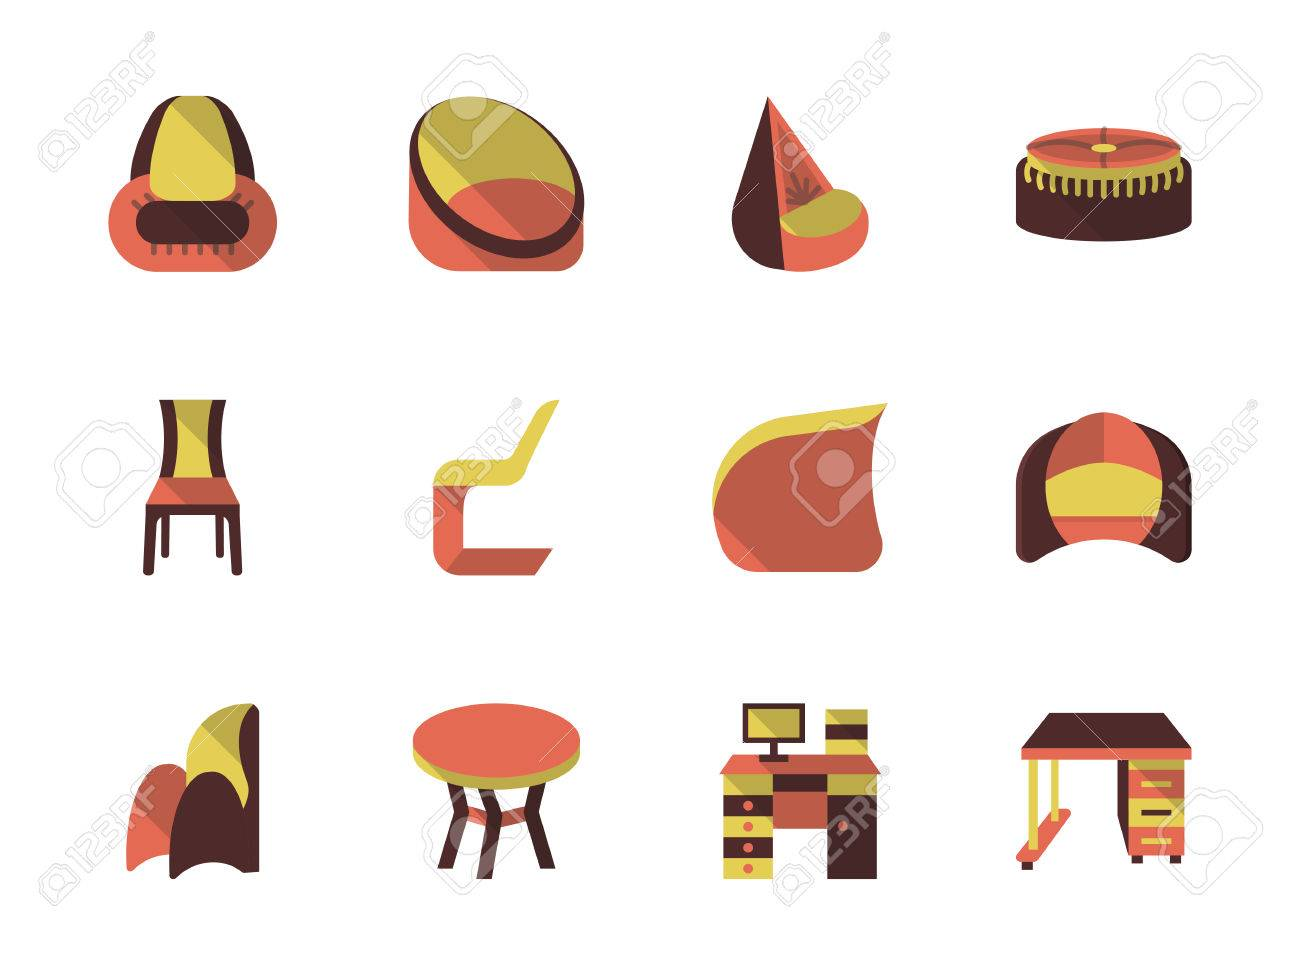 Comfortable Furniture For Modern Interior. Furniture Store. Set Of Colored  Flat Vector Icons.